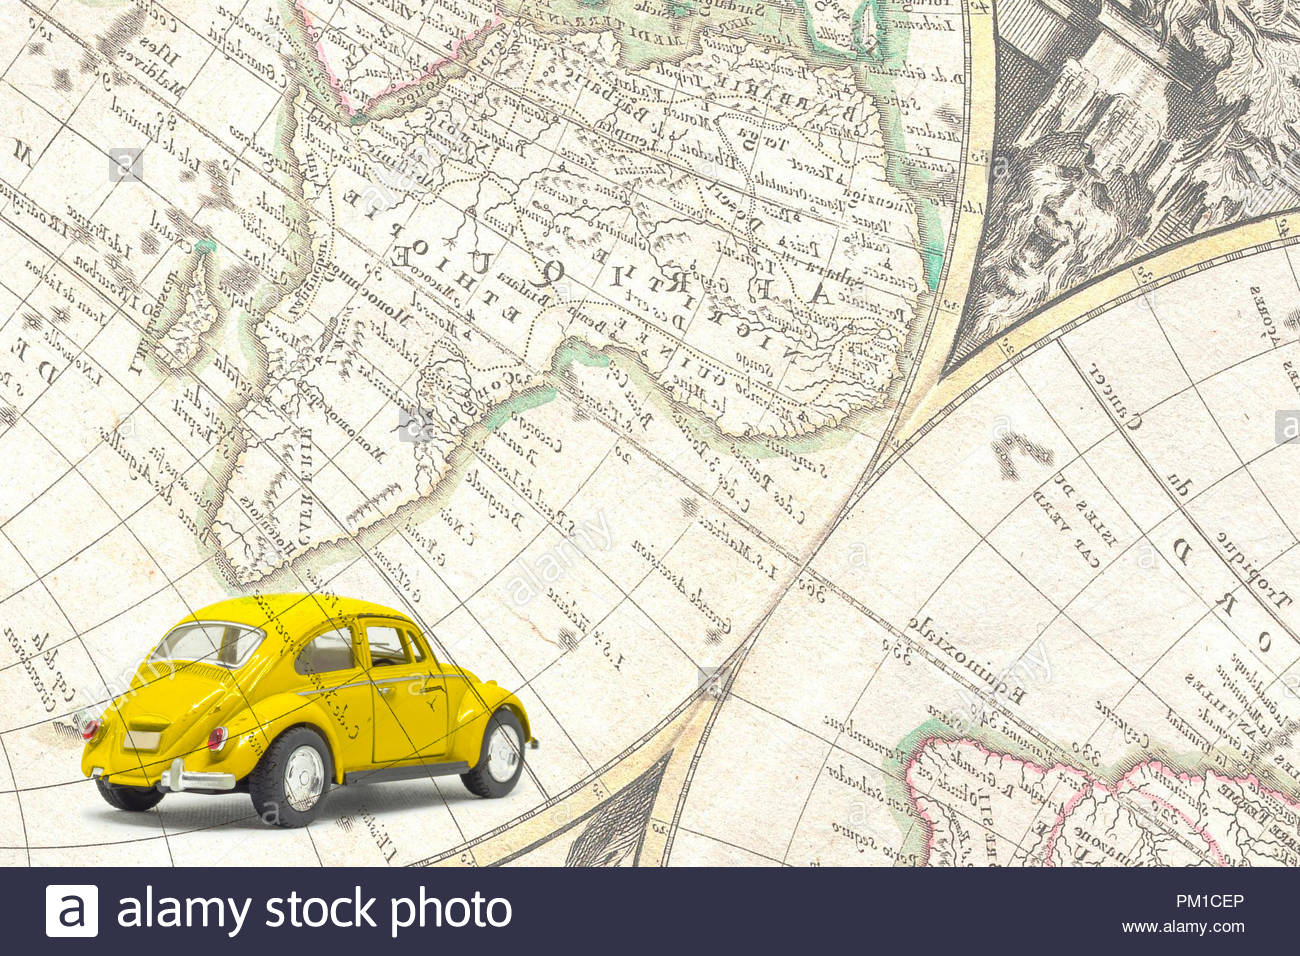 Isolated used yellow toy car, under an old map Stock Photo